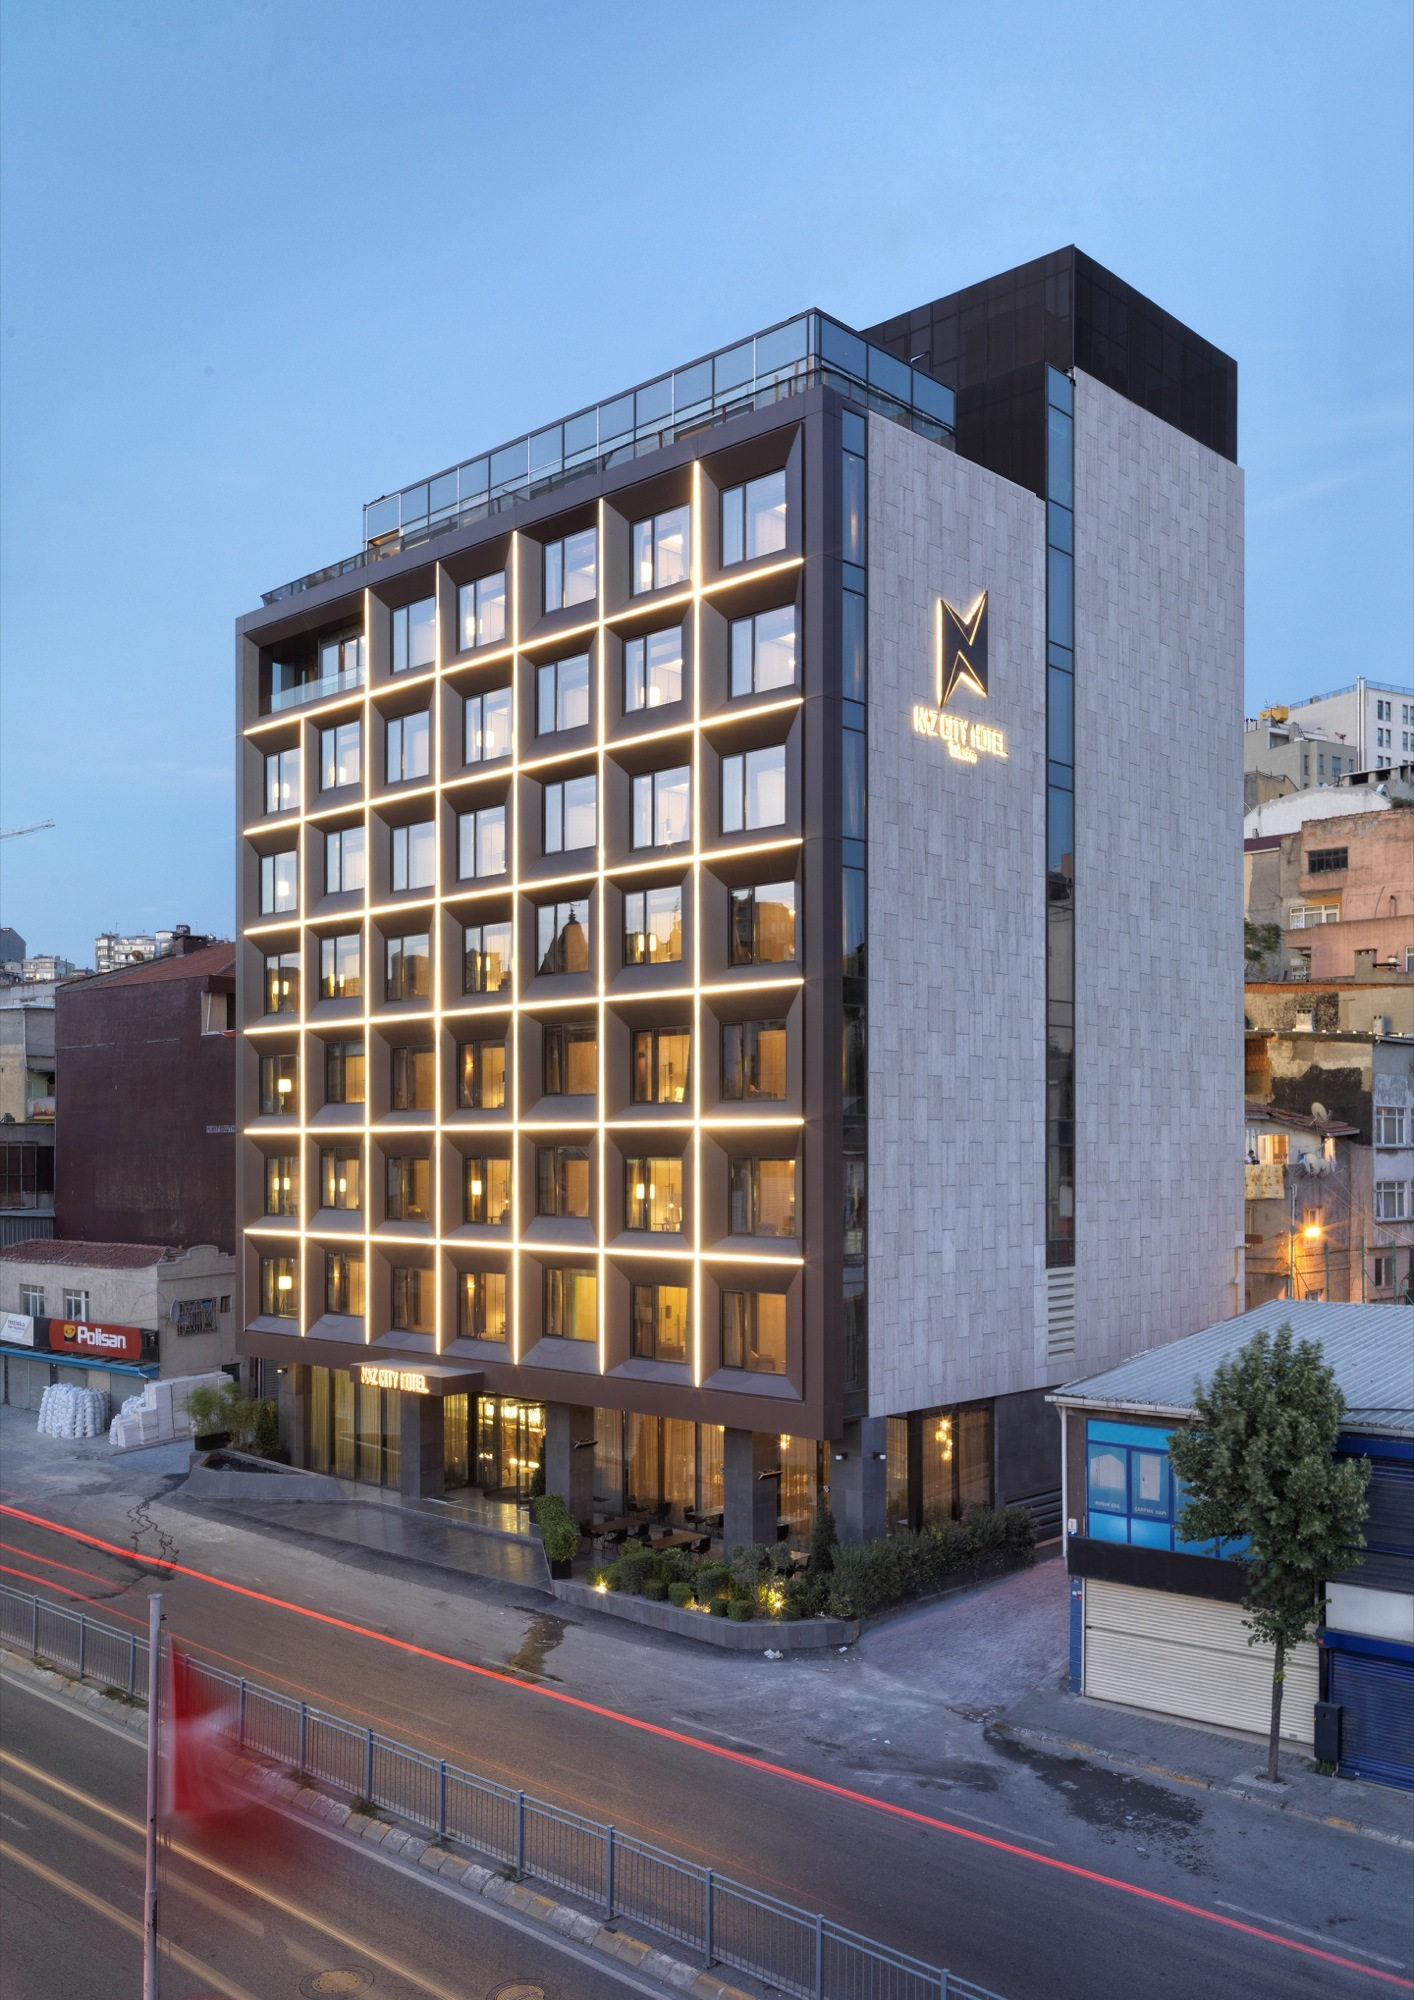 Naz city hotel taksim metex design group archdaily for Ideal hotel design avis